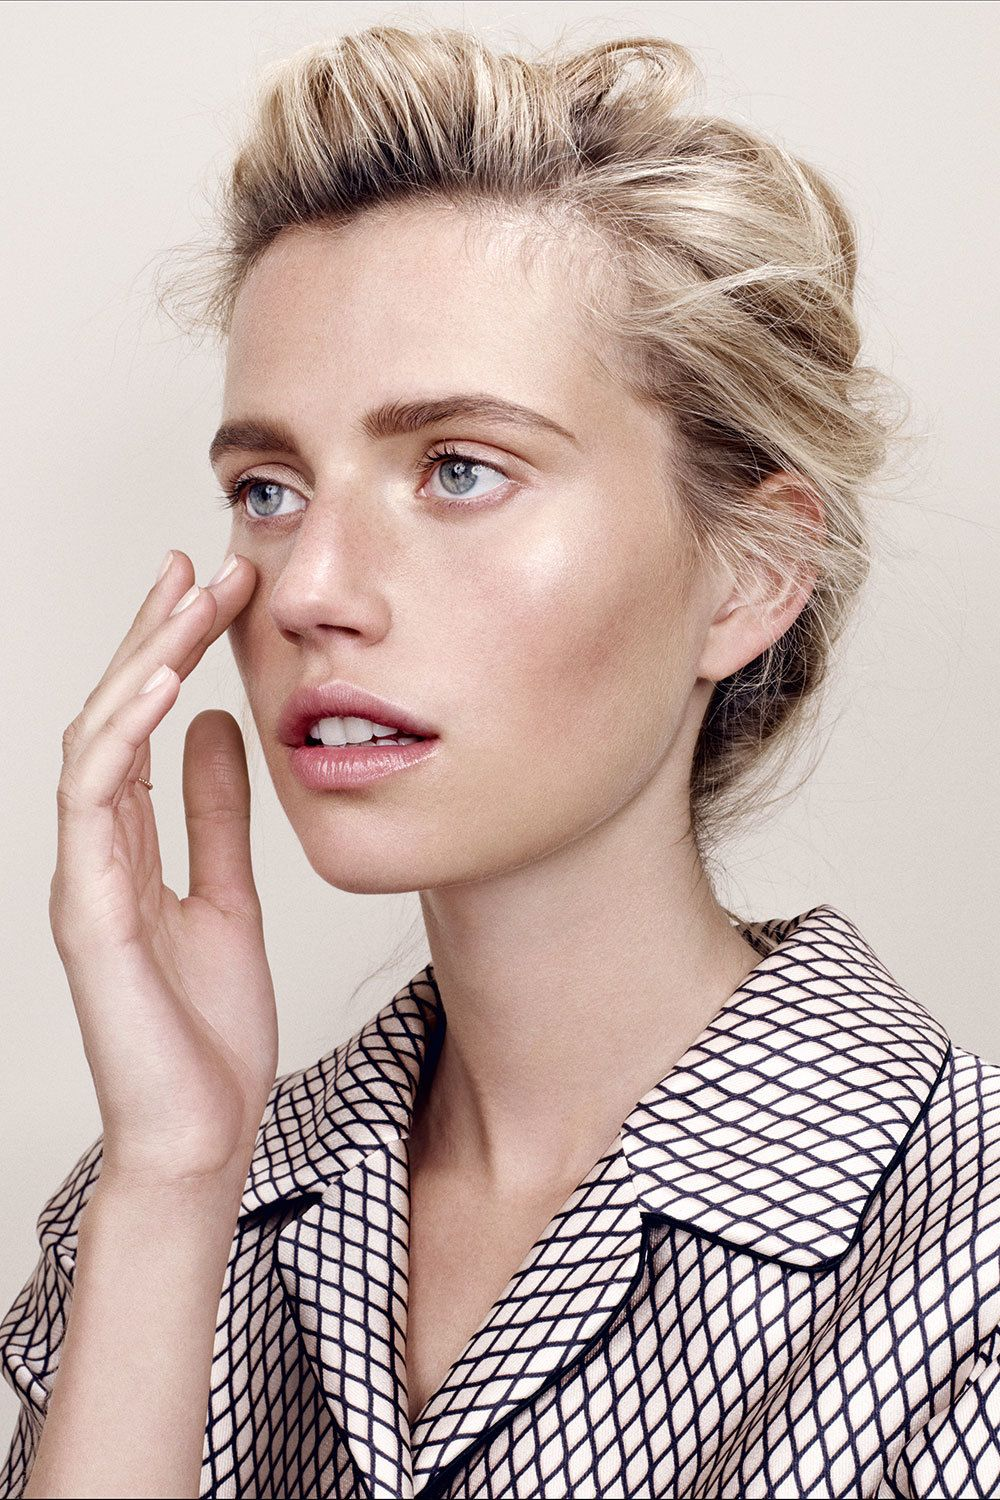 #SkinSchool: Milia causes and treatment options